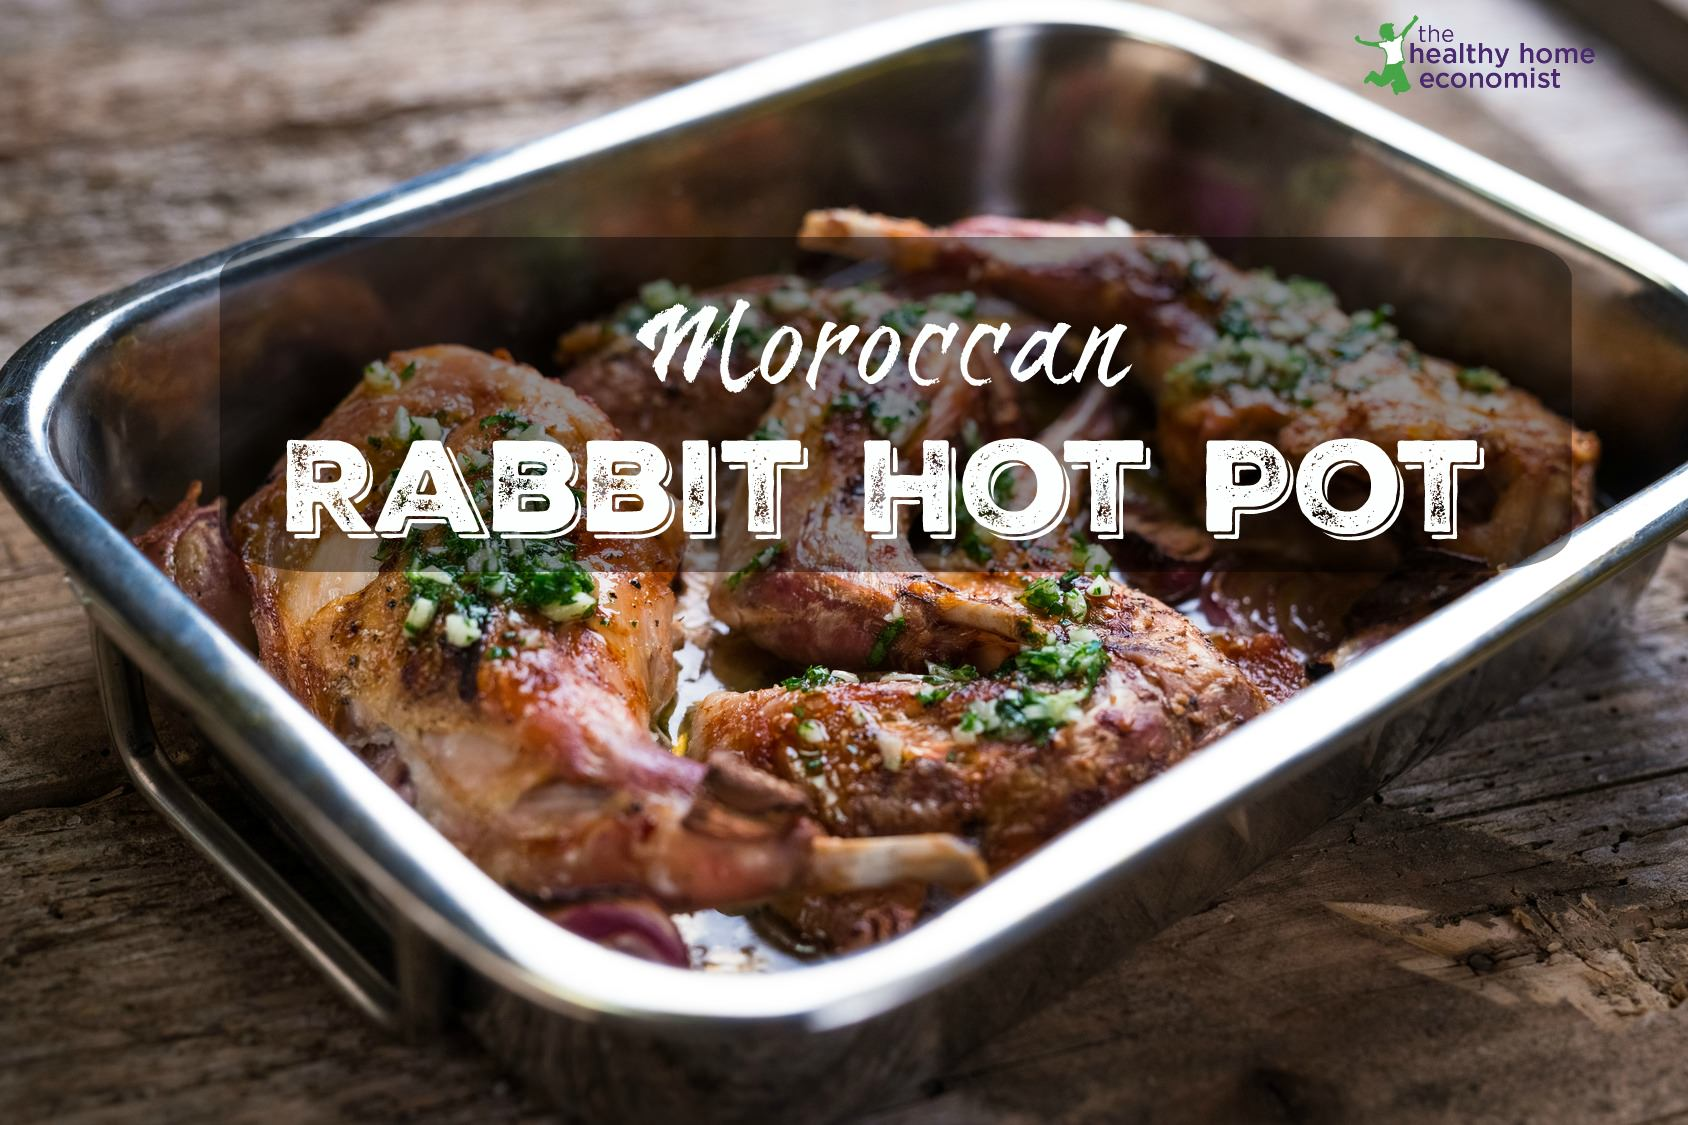 Morrocan rabbit hot pot recipe the healthy home economist i tasted my first rabbit hot pot recipe at a moroccan restaurant in los angeles when i was 19 and on a cross country trip with my brother helping him with a forumfinder Image collections